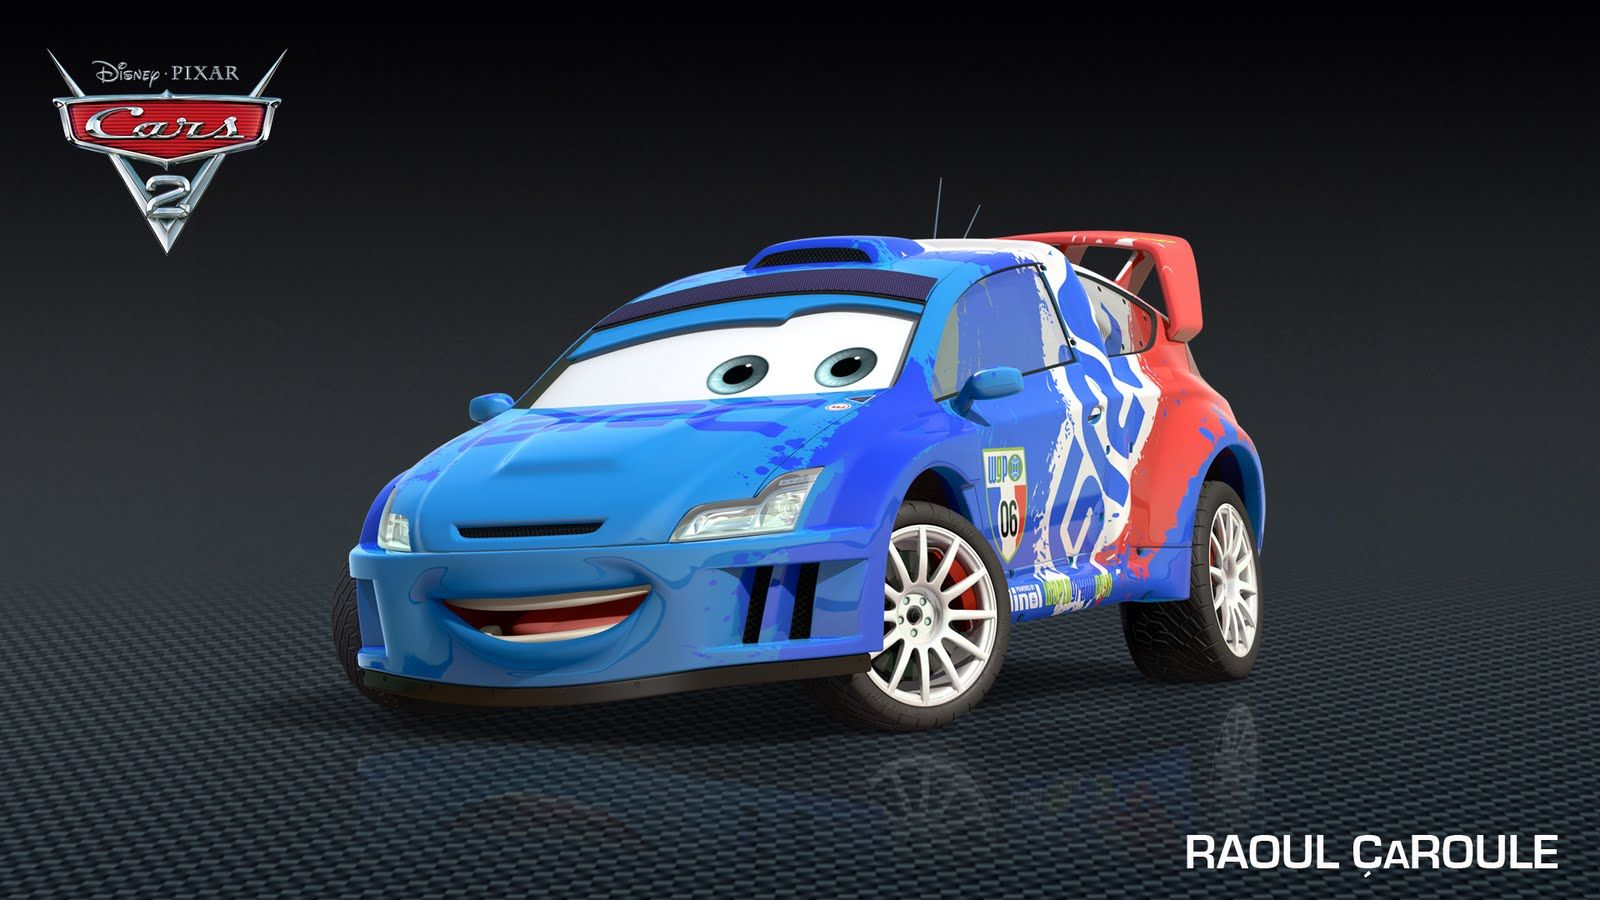 Access Pixar New Cars 2 Character Raoul Caroule Cars Movie Cars Characters Pixar Cars